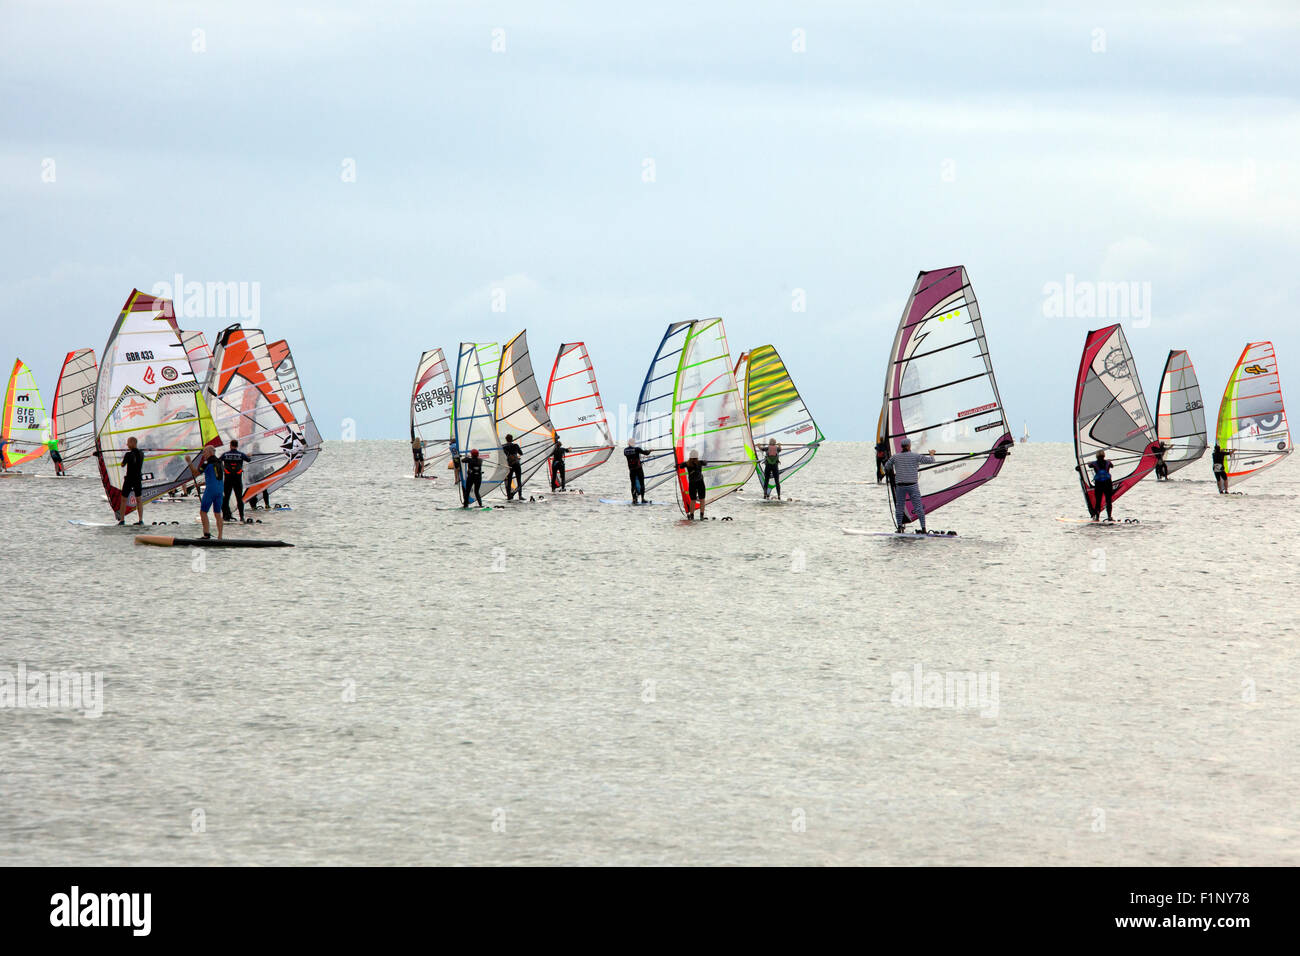 Windsurfers competing at the National Watersports Festival, Hayling Island, Hampshire UK. 5th September, 2015. - Stock Image